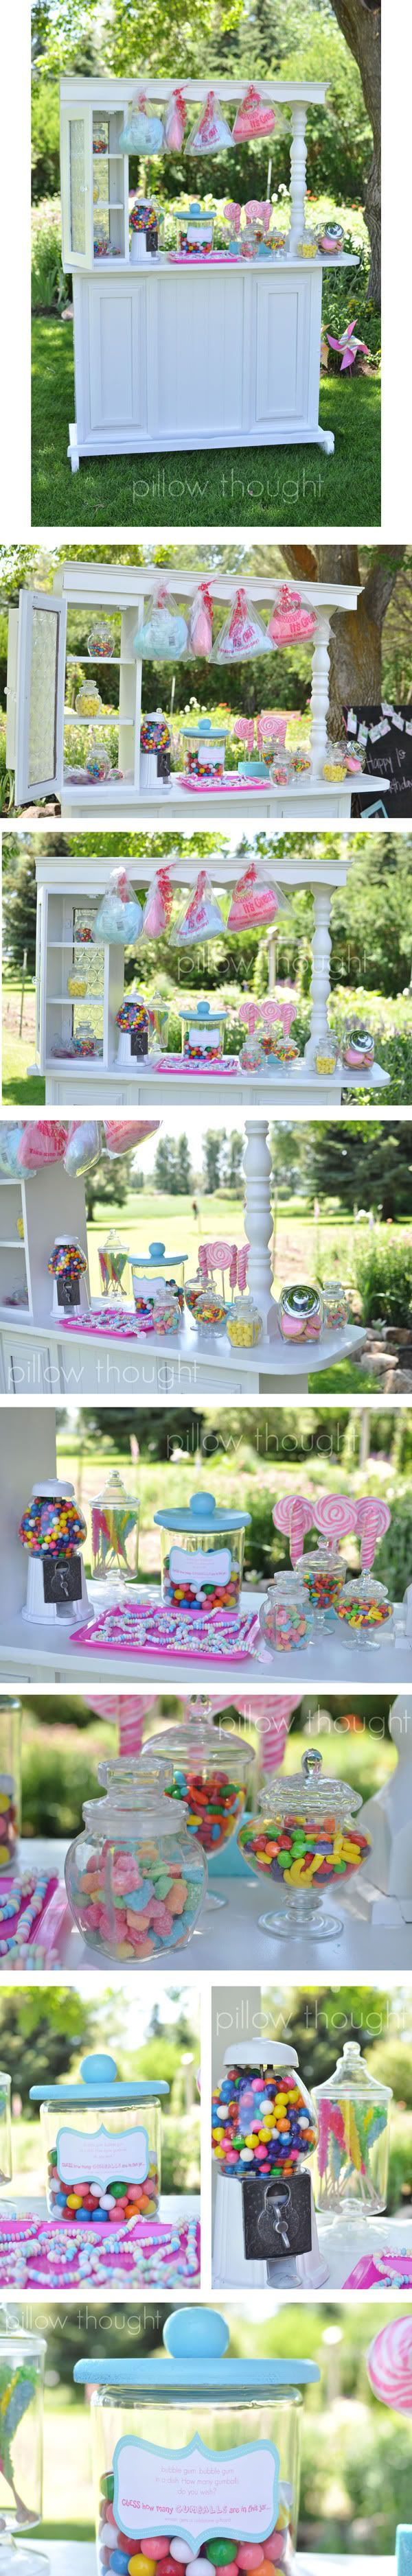 Pillow Thought: Sweet Shop Birthday Details